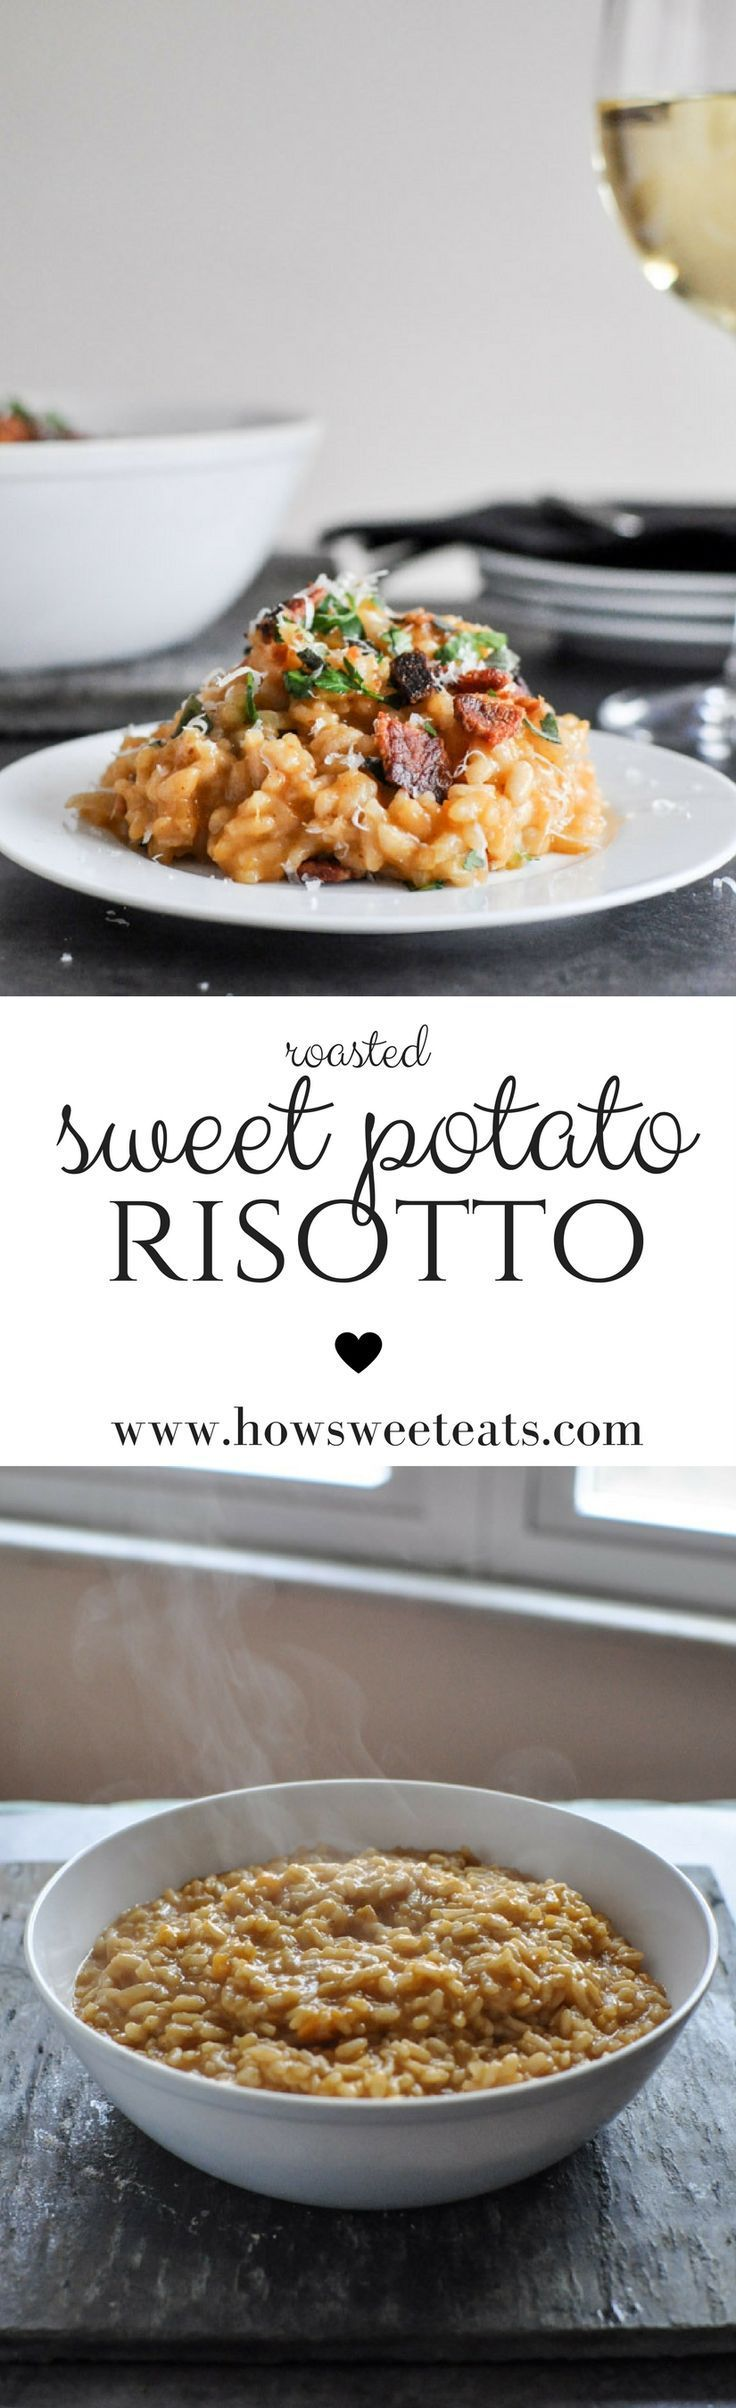 Roasted Sweet Potato Risotto by /howsweeteats/ I http://howsweeteats.com